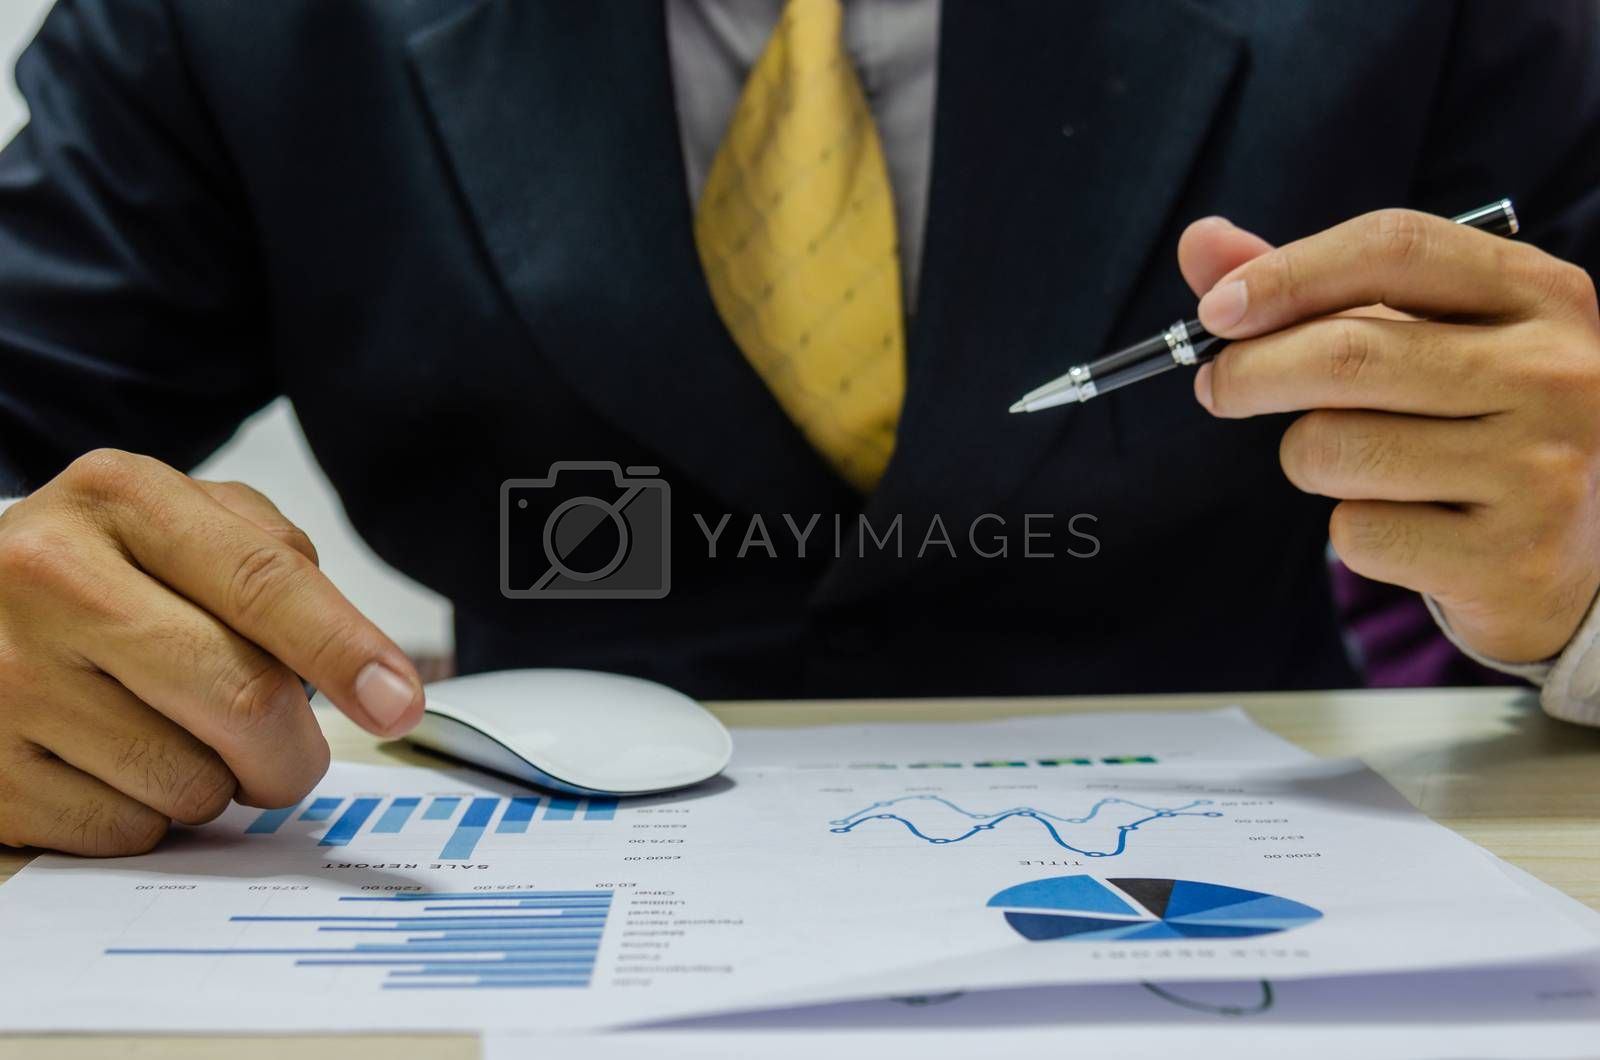 Financial business man document graph analyzing and checking income-expenses. Business concept of tax and finance.